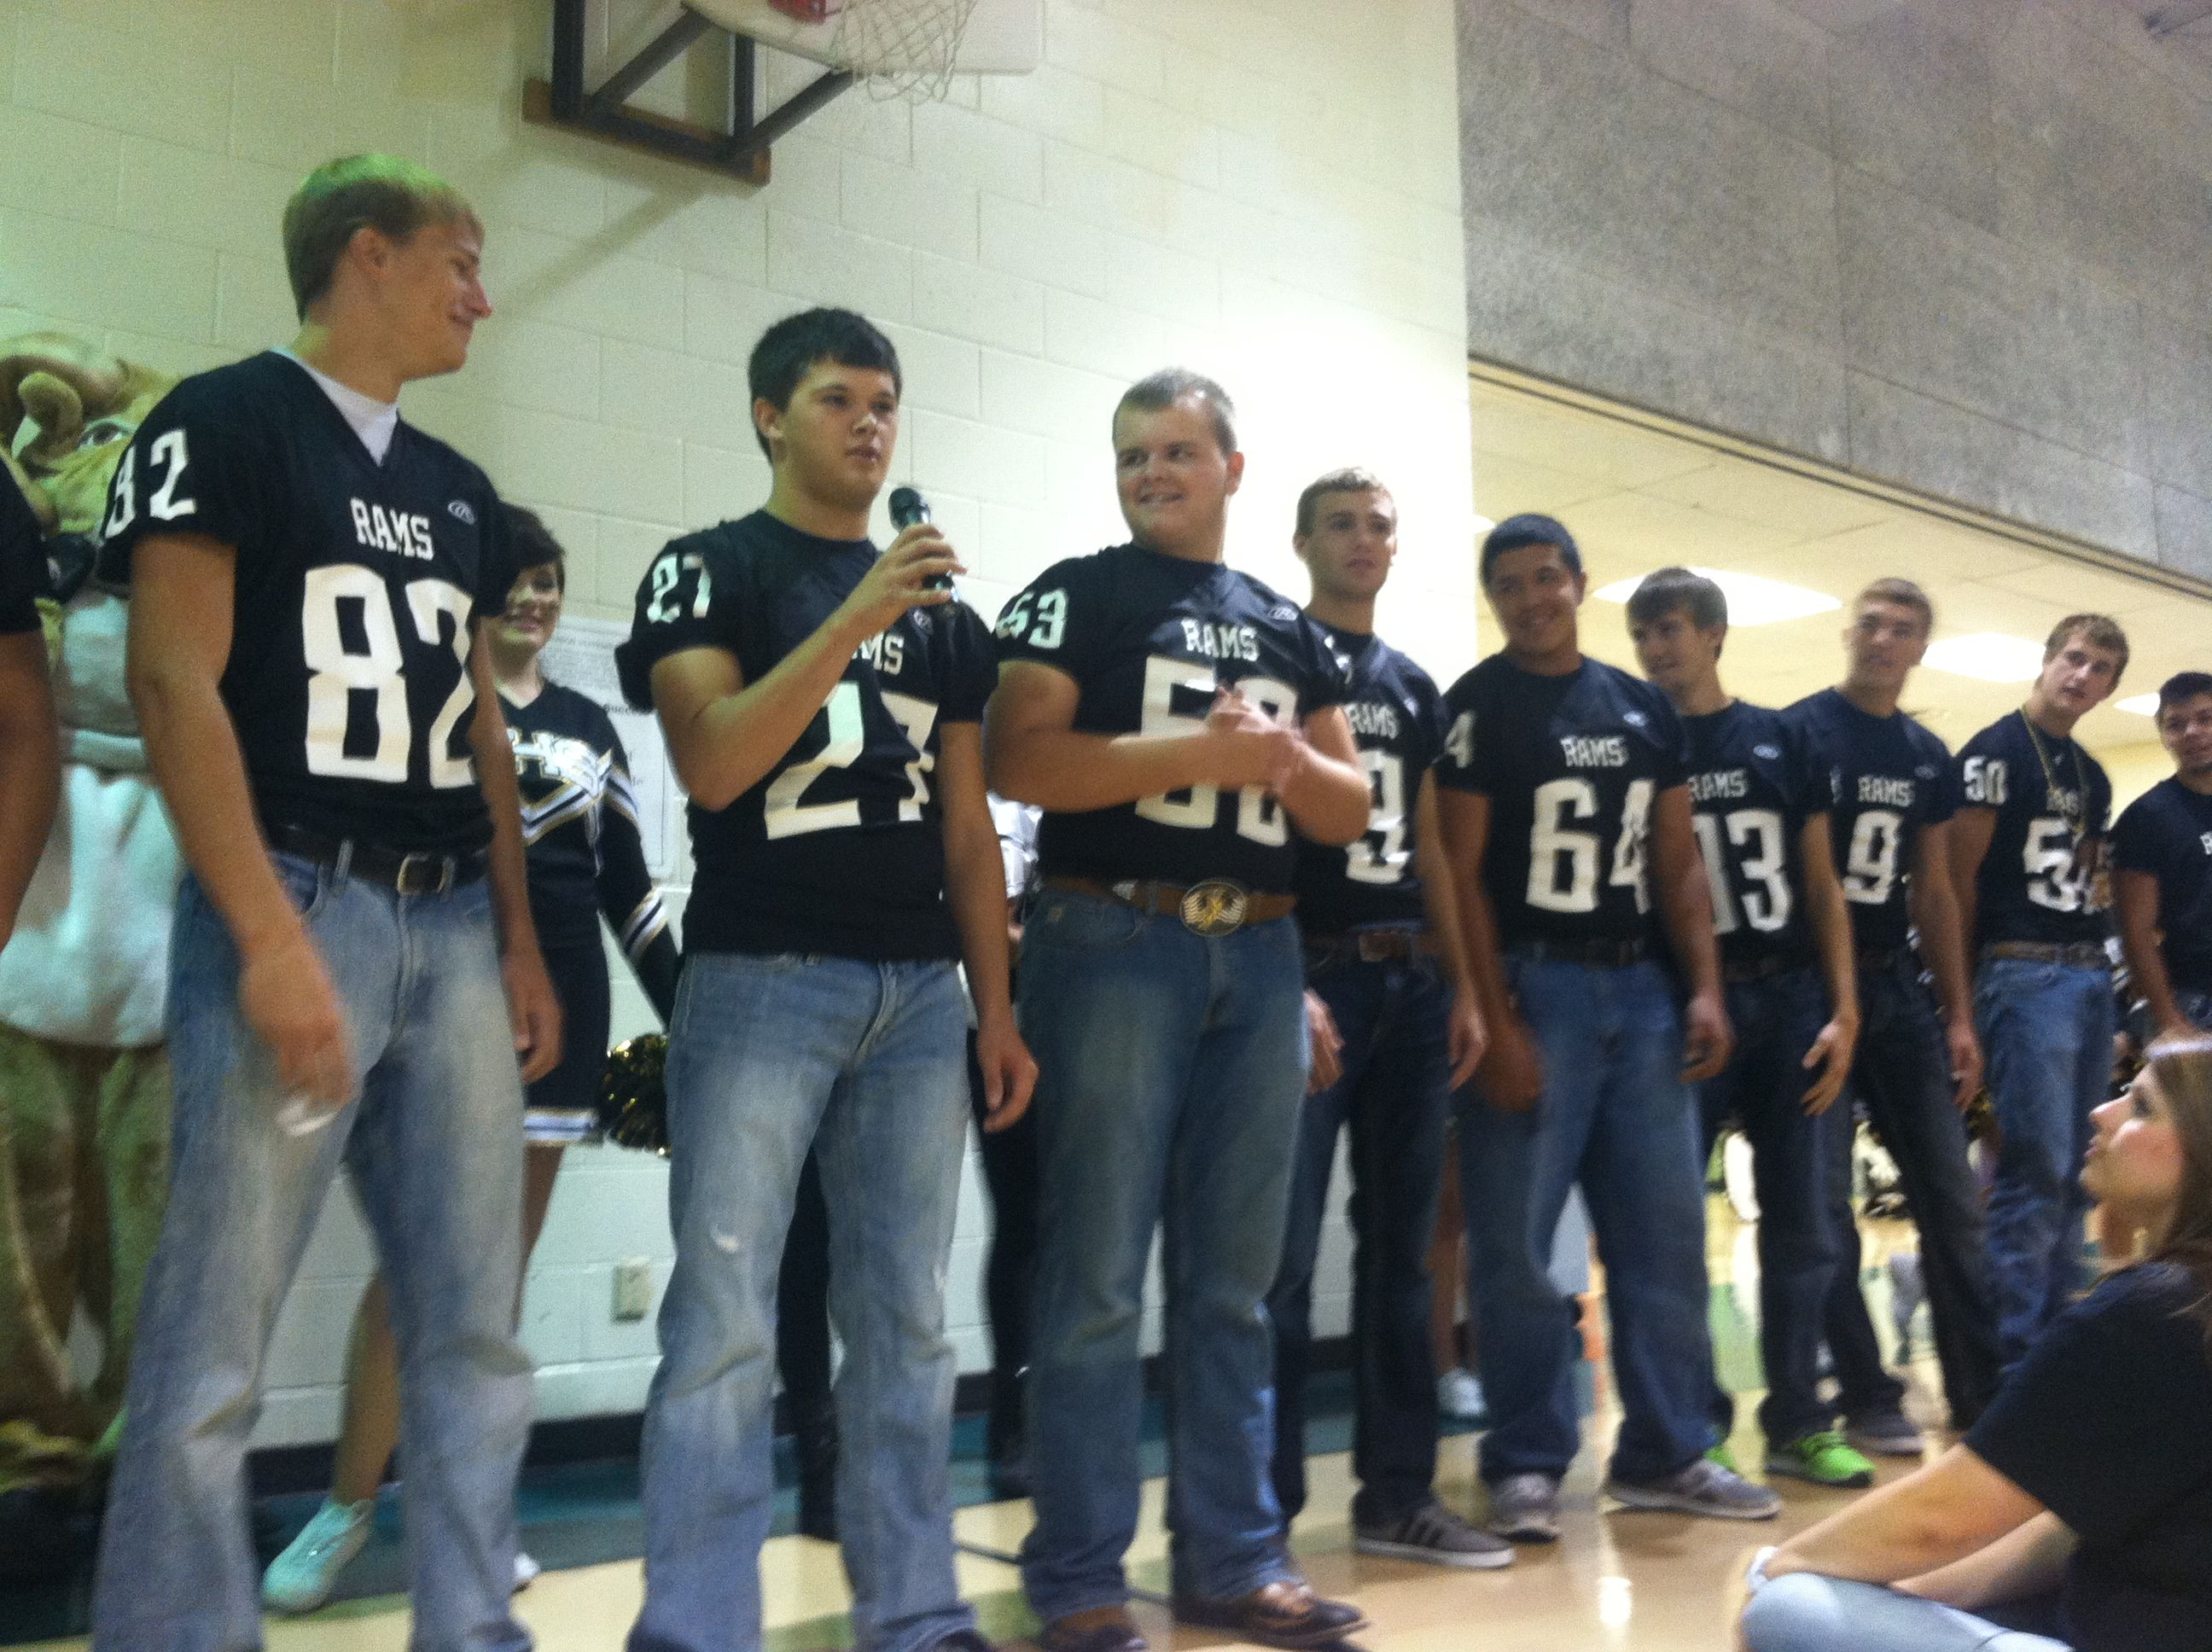 Senior football players talk to elementary kids at their